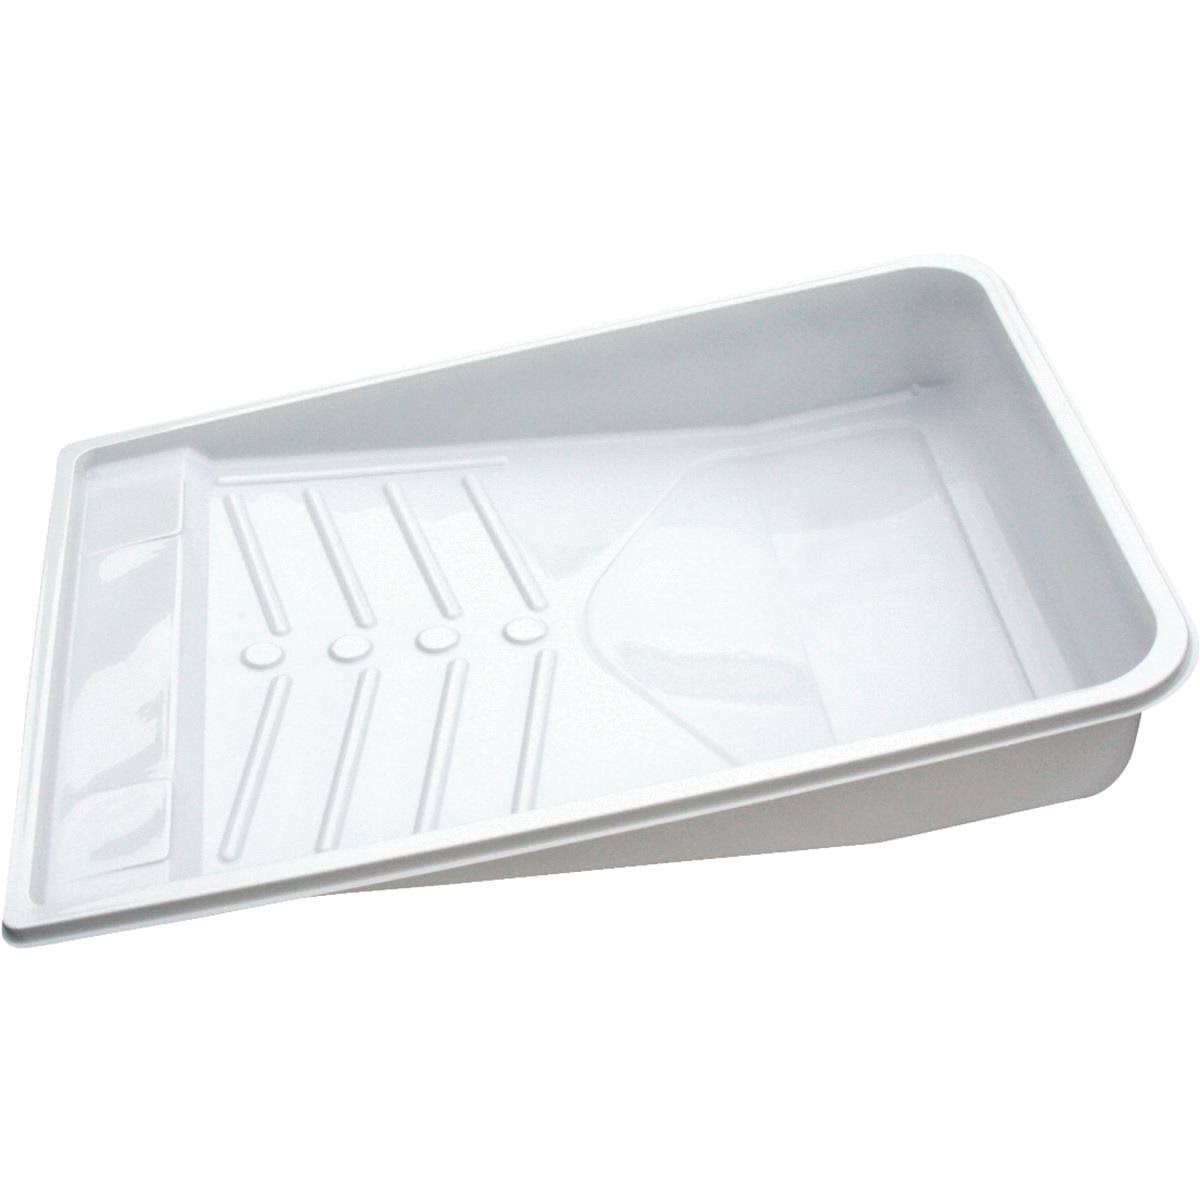 Plastic Paint Tray Liner Contains